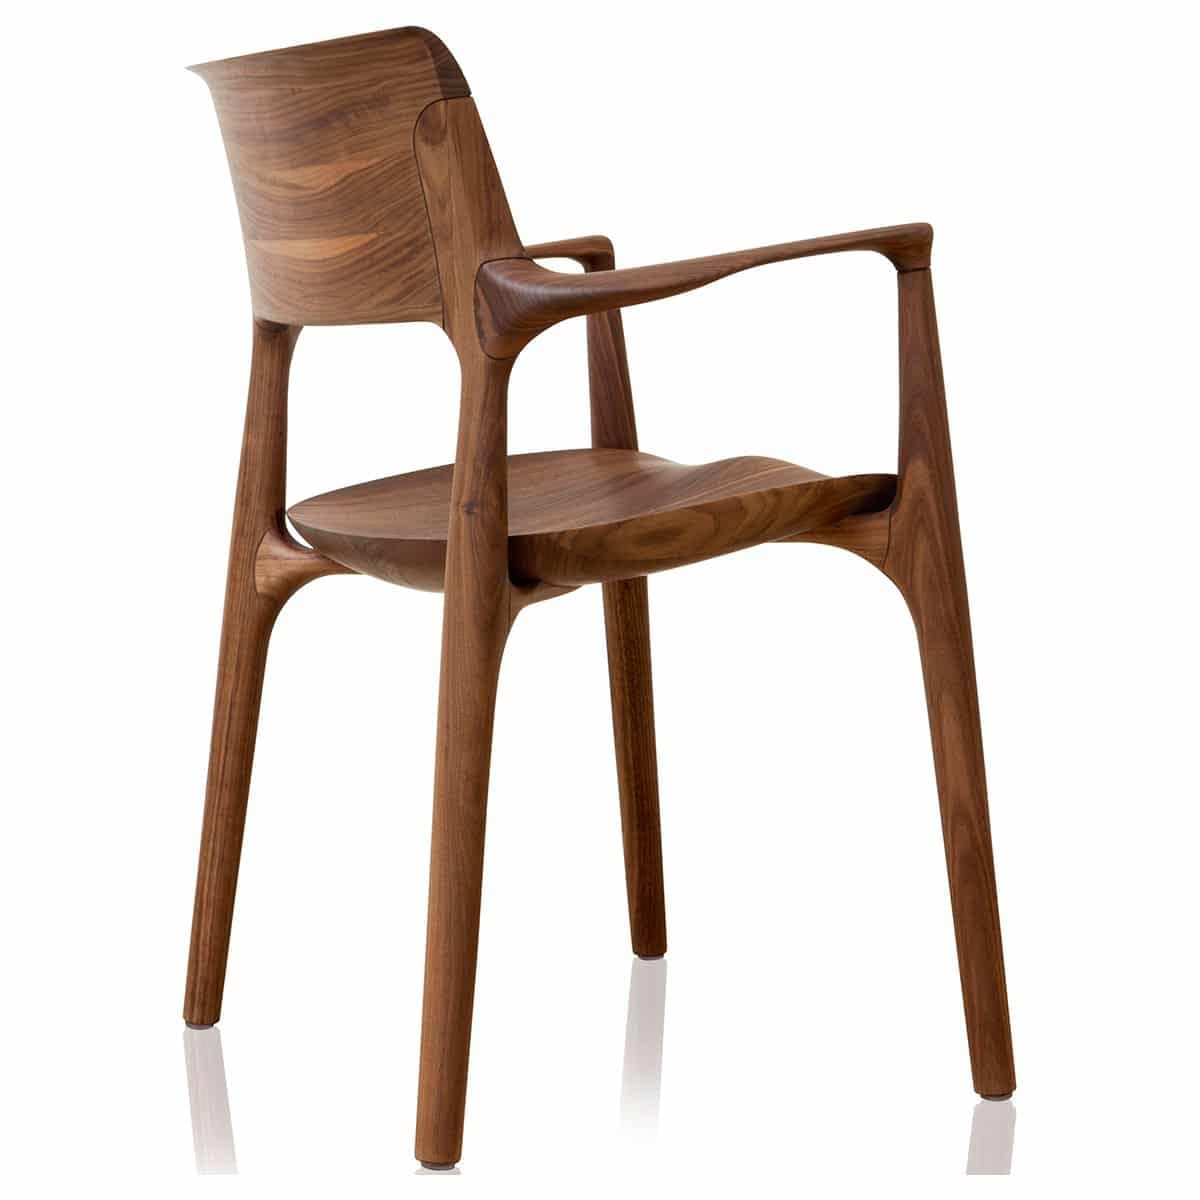 Designer Jader Almeidal Design Easy Chair